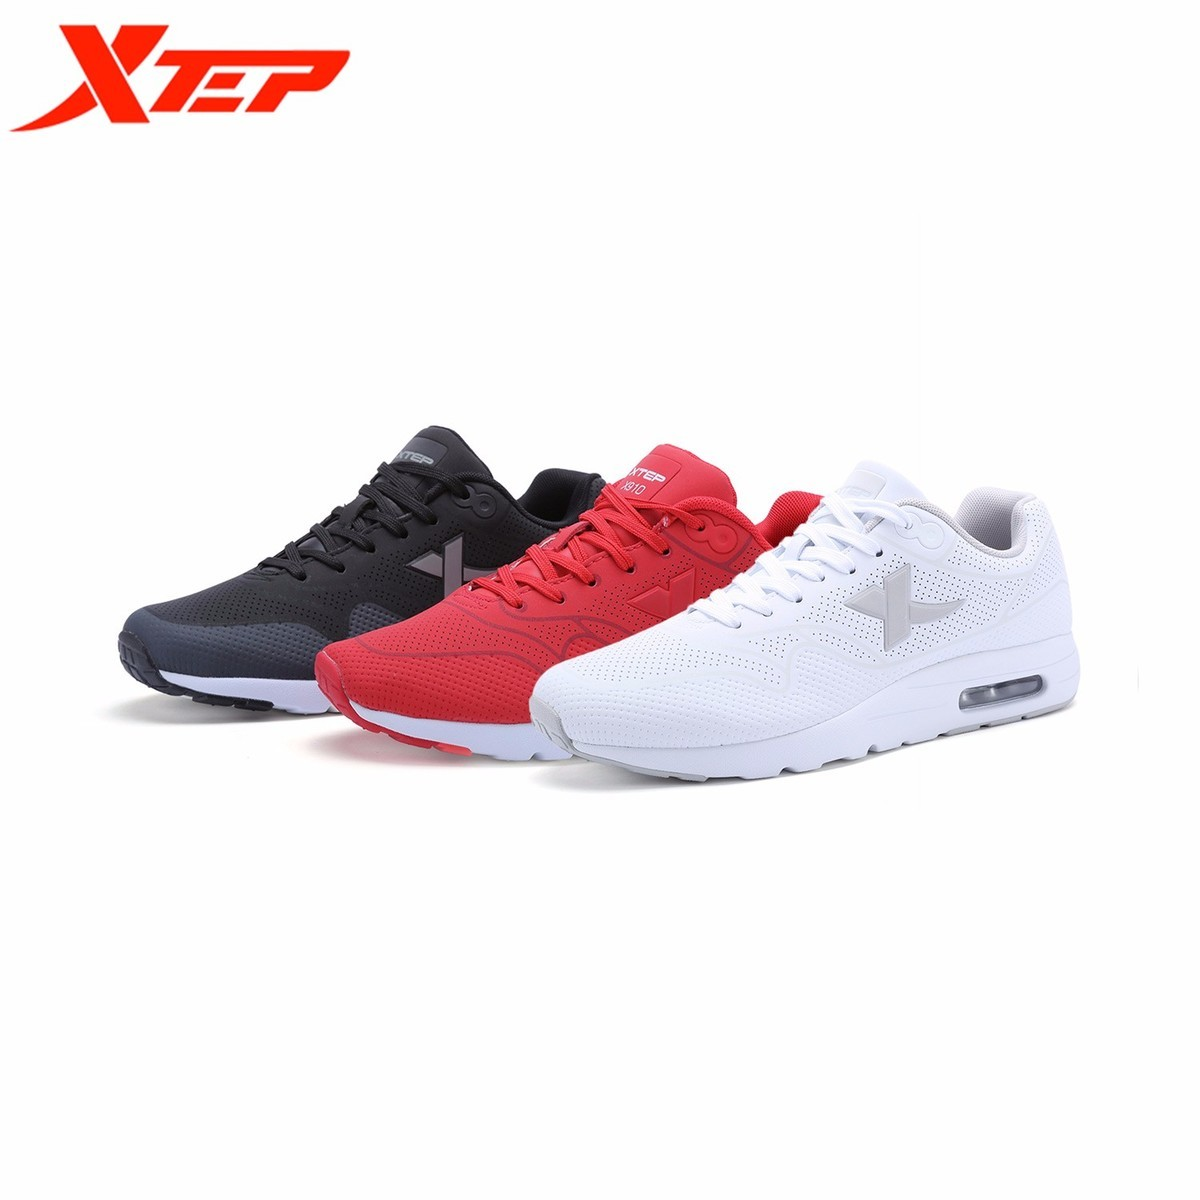 XTEP Brand Professional Running Shoes for breathable Women Athletic Light Leather Sport White Red Black Genuine On Sale Sneakers new hot sale children shoes pu leather comfortable breathable running shoes kids led luminous sneakers girls white black pink